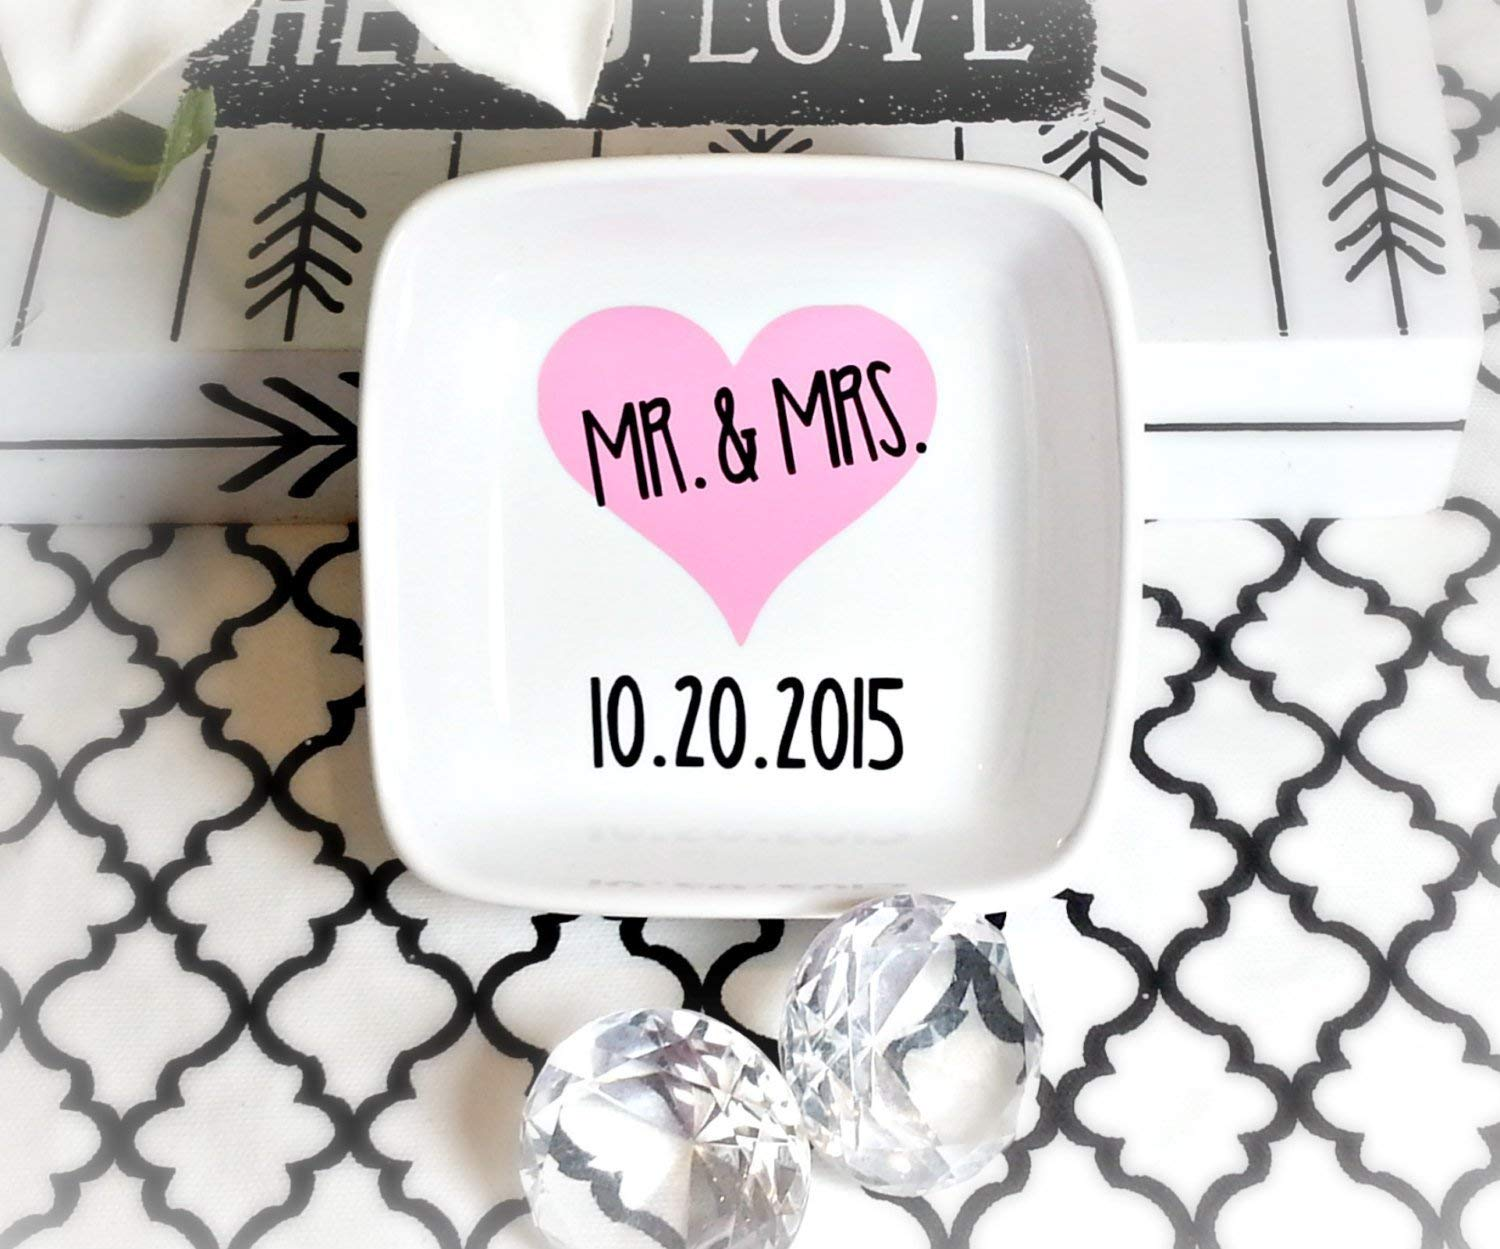 Mr and Mrs Ring Dish, His and Hers Ring Dish, His and Hers Ring Bowl, Wedding Ring Bowl, Wifey Gift, Future Wifey Gift, Bride to Be Gift